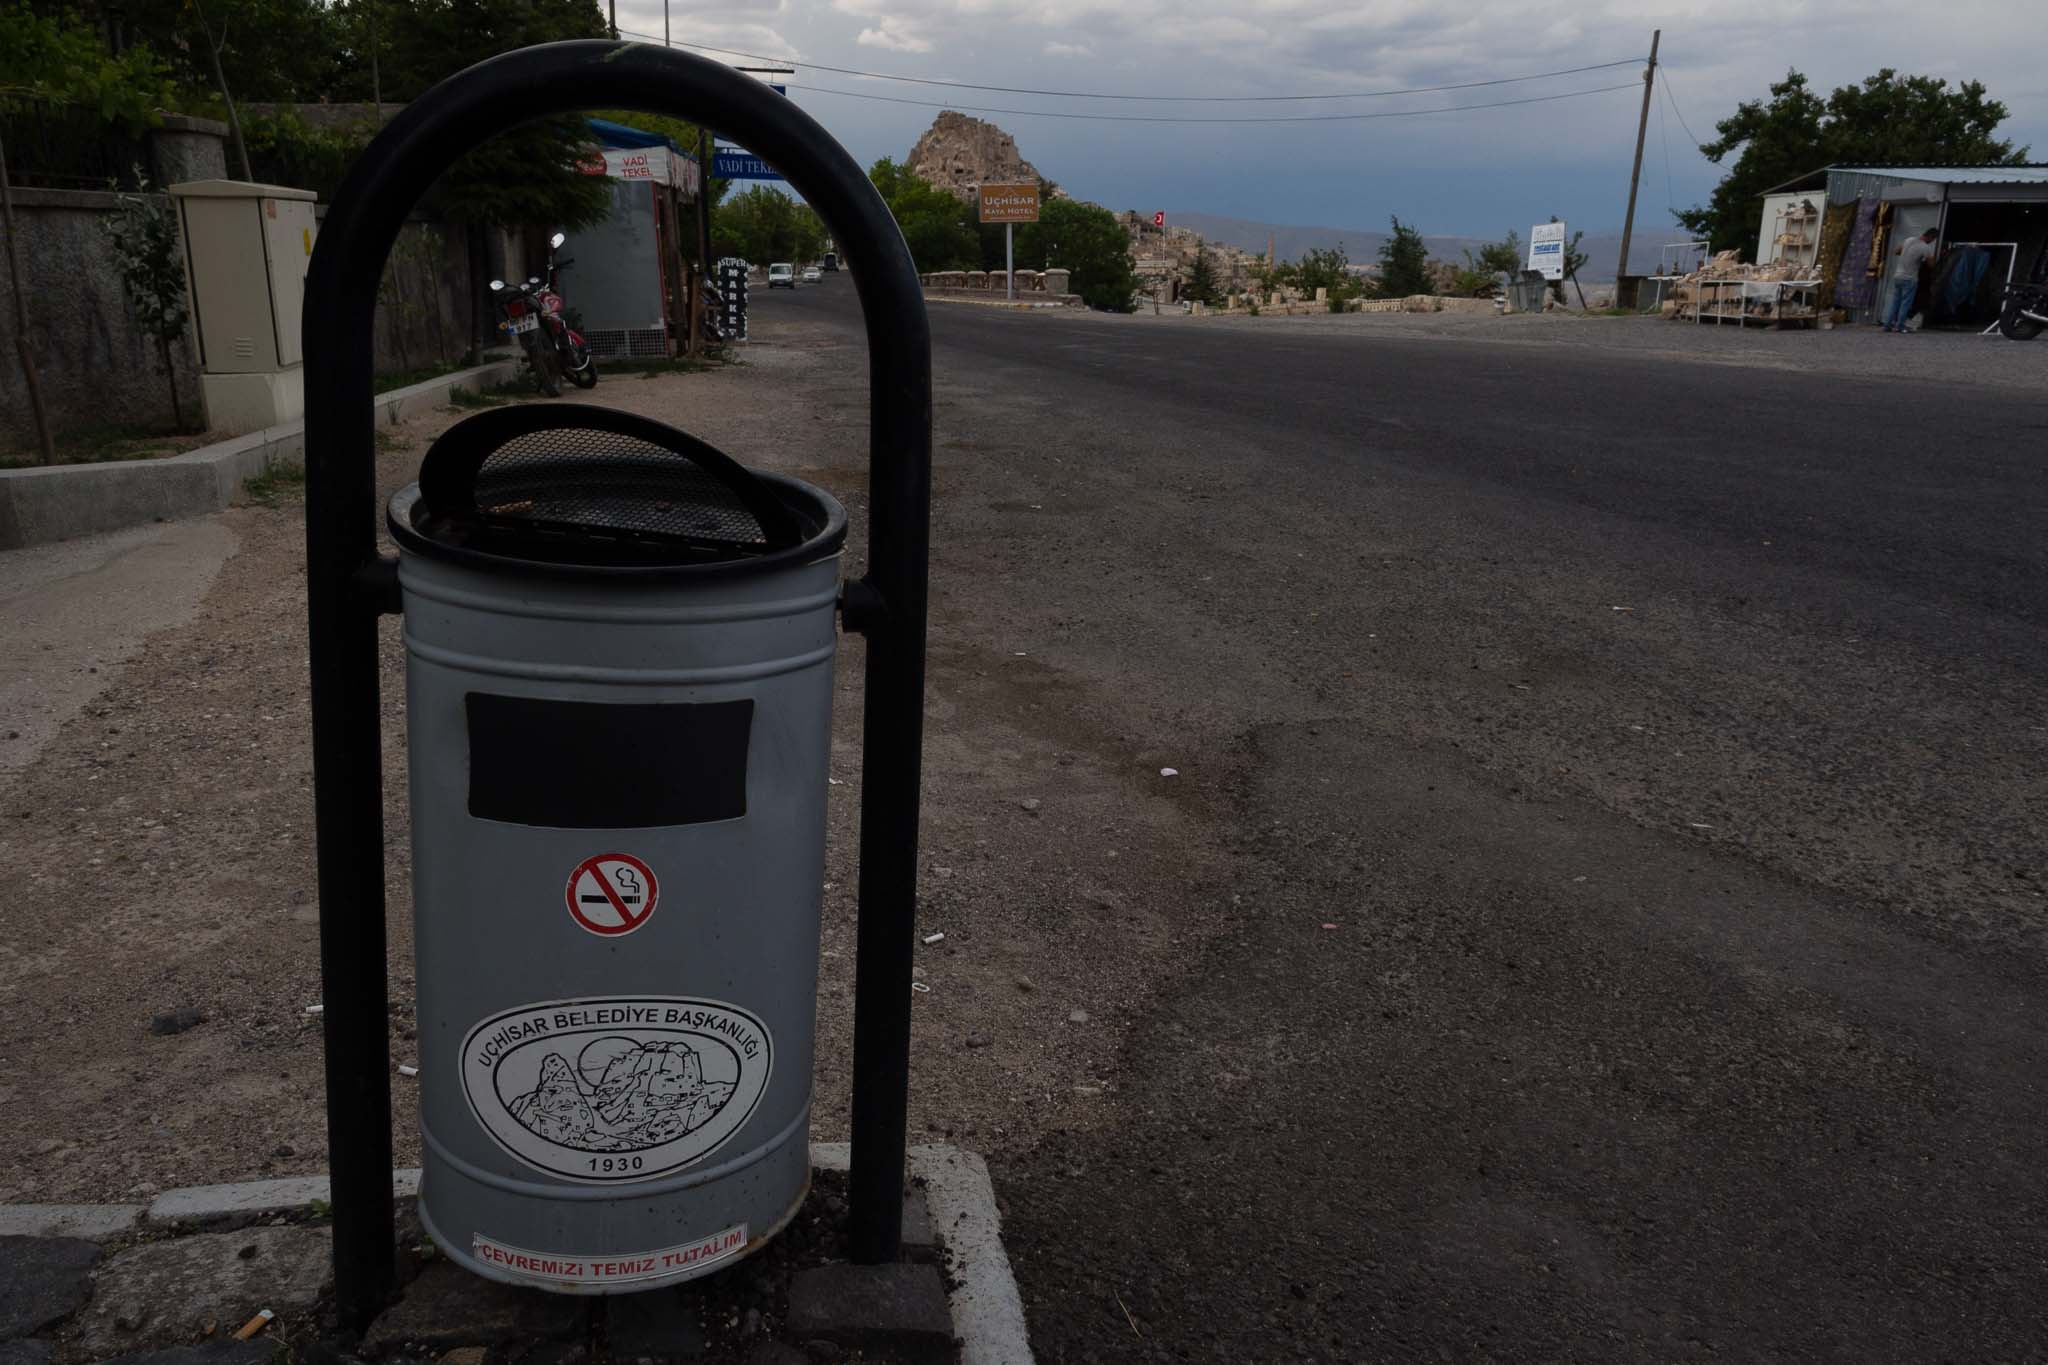 A roadside bin in the Cappadokia region of Central Turkey. Note the cave dwellings in the mountain behind it.